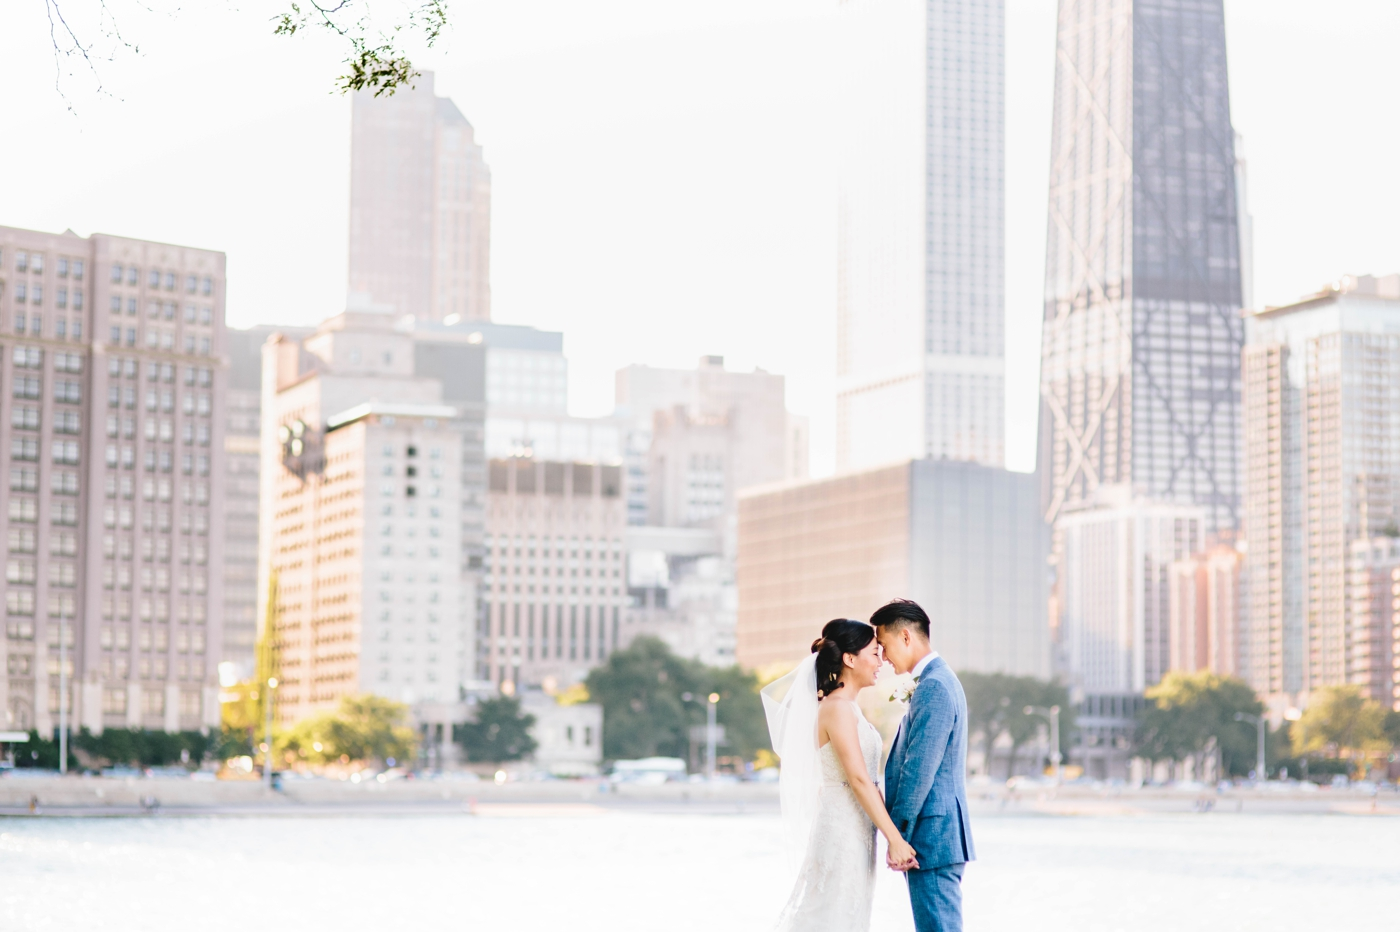 chicago-fine-art-wedding-photography-rayandsilvia17